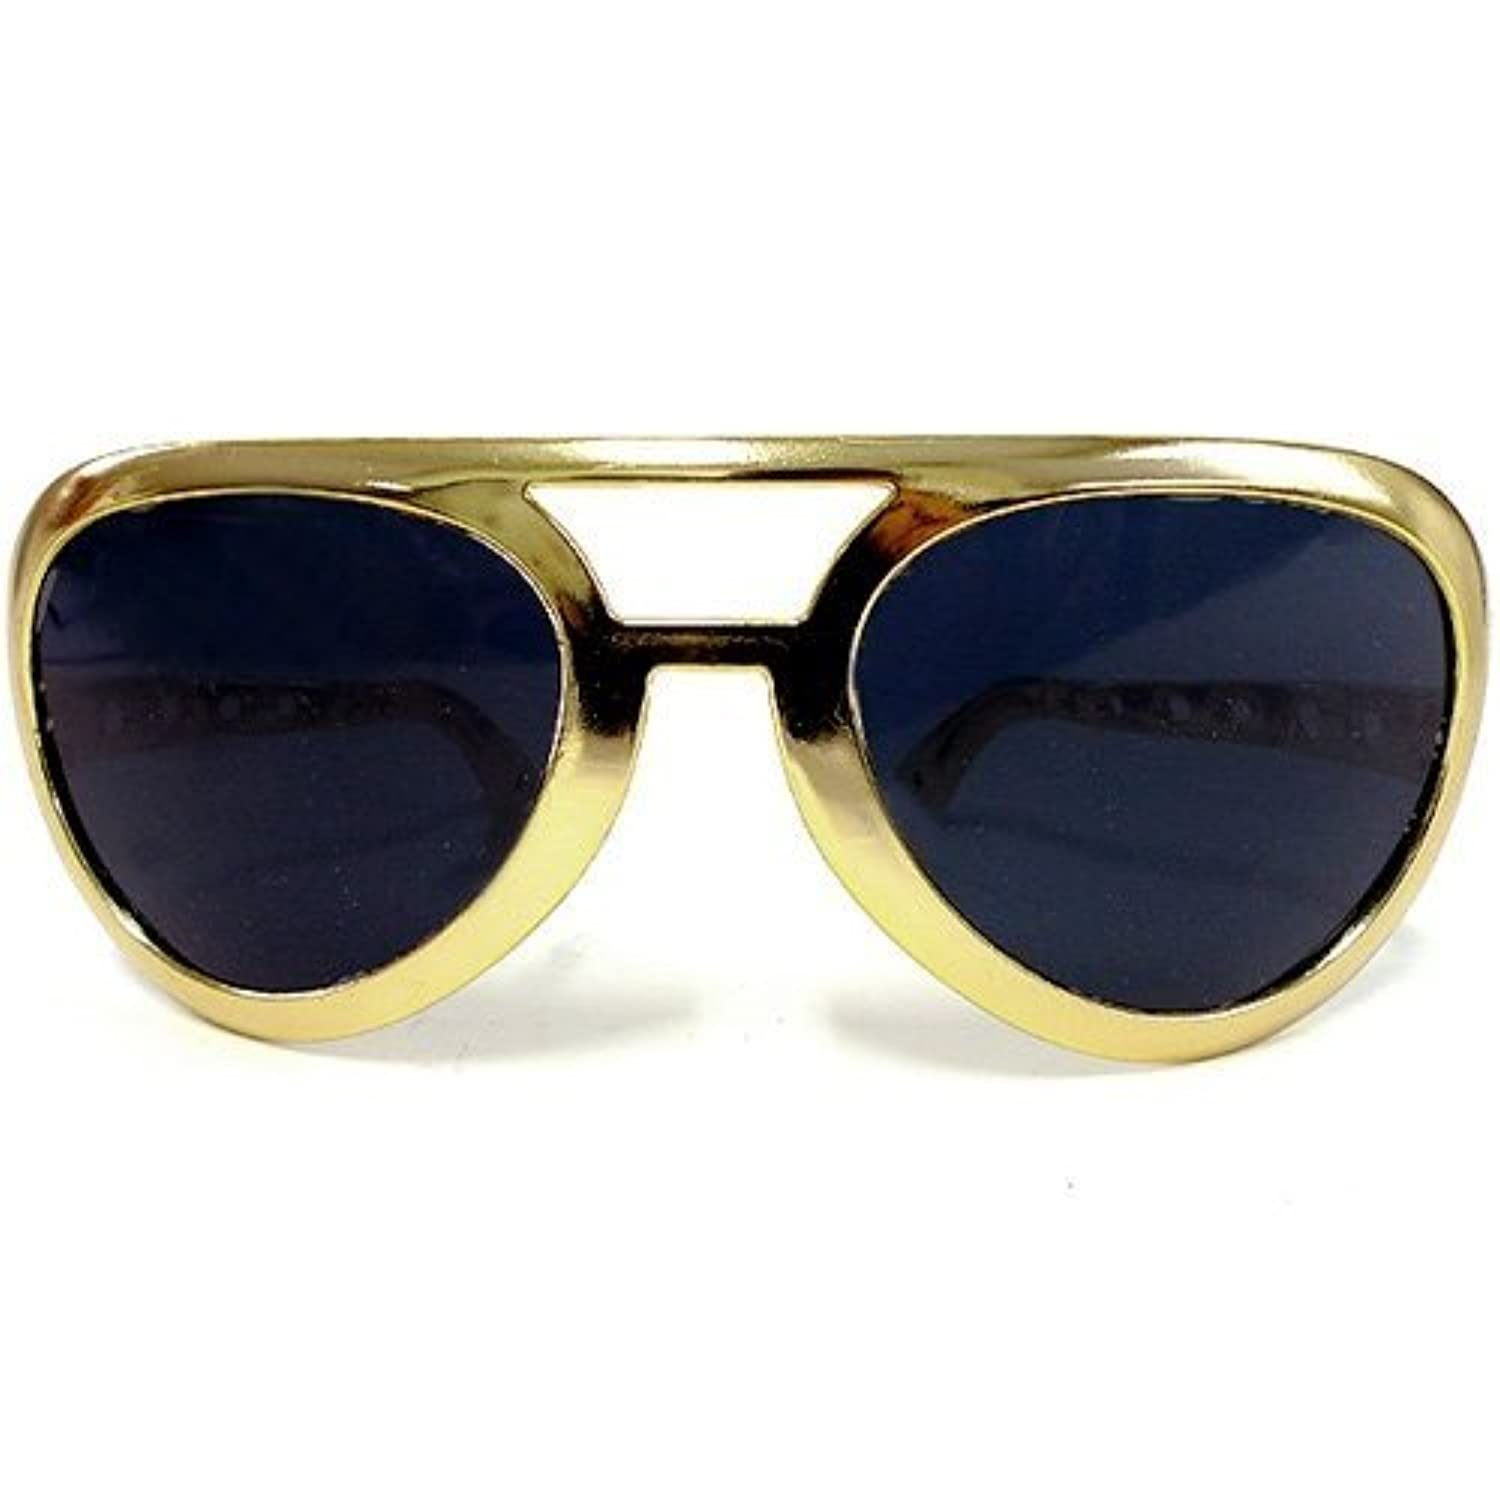 Fun Party Toy - Oversize Elvis Sunglasses (Gold)